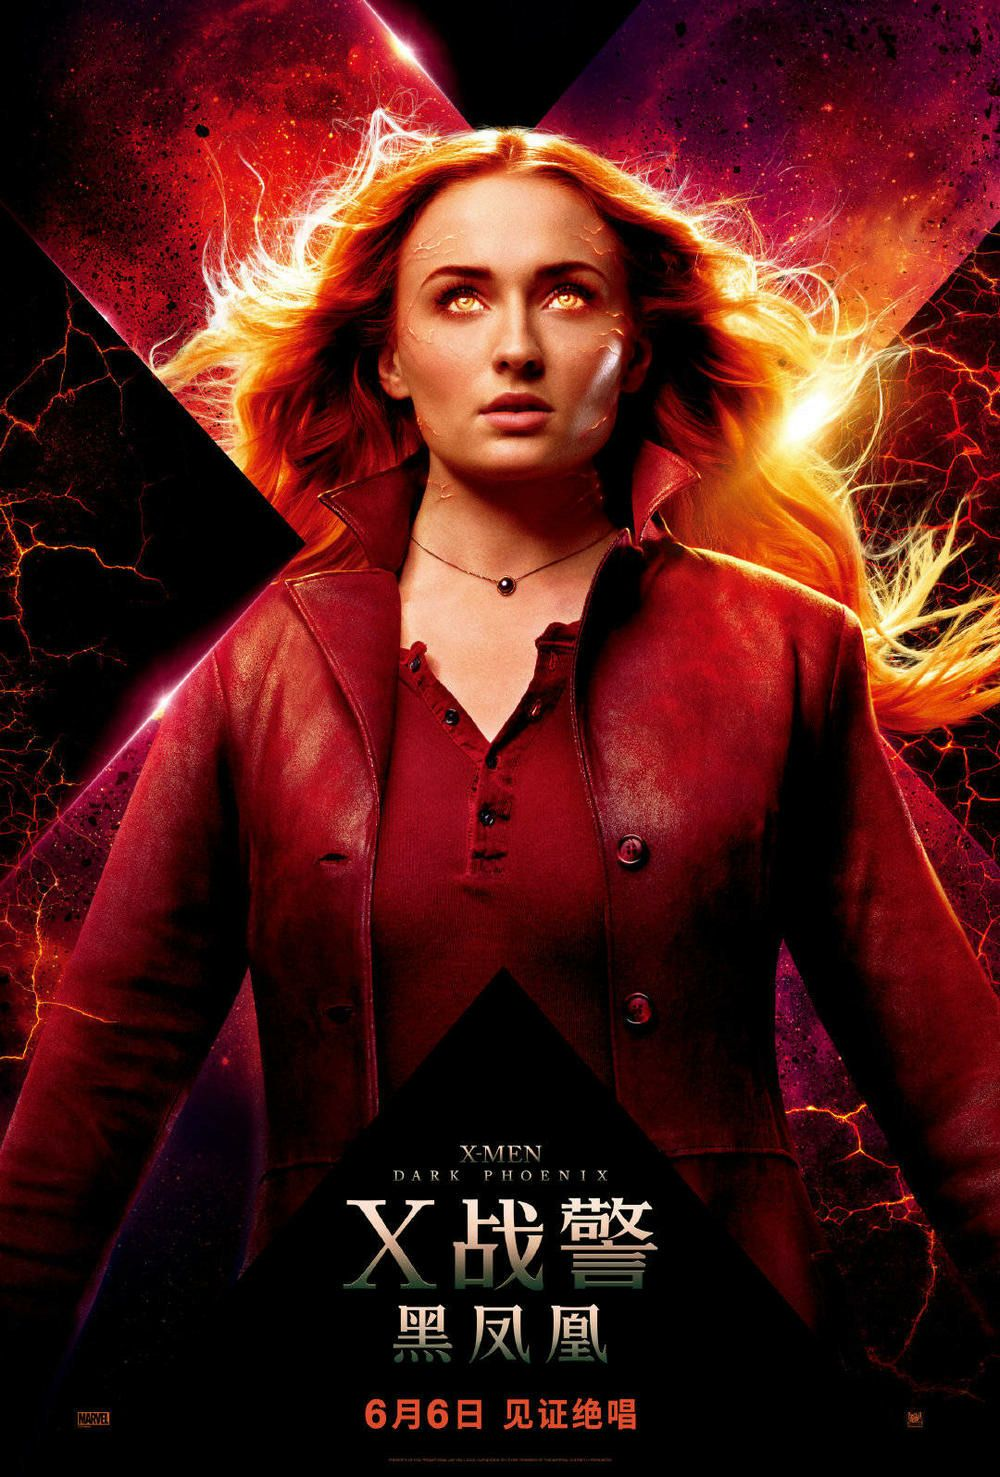 X Men Dark Phoenix 2019 Dark Phoenix Jean Grey X Men